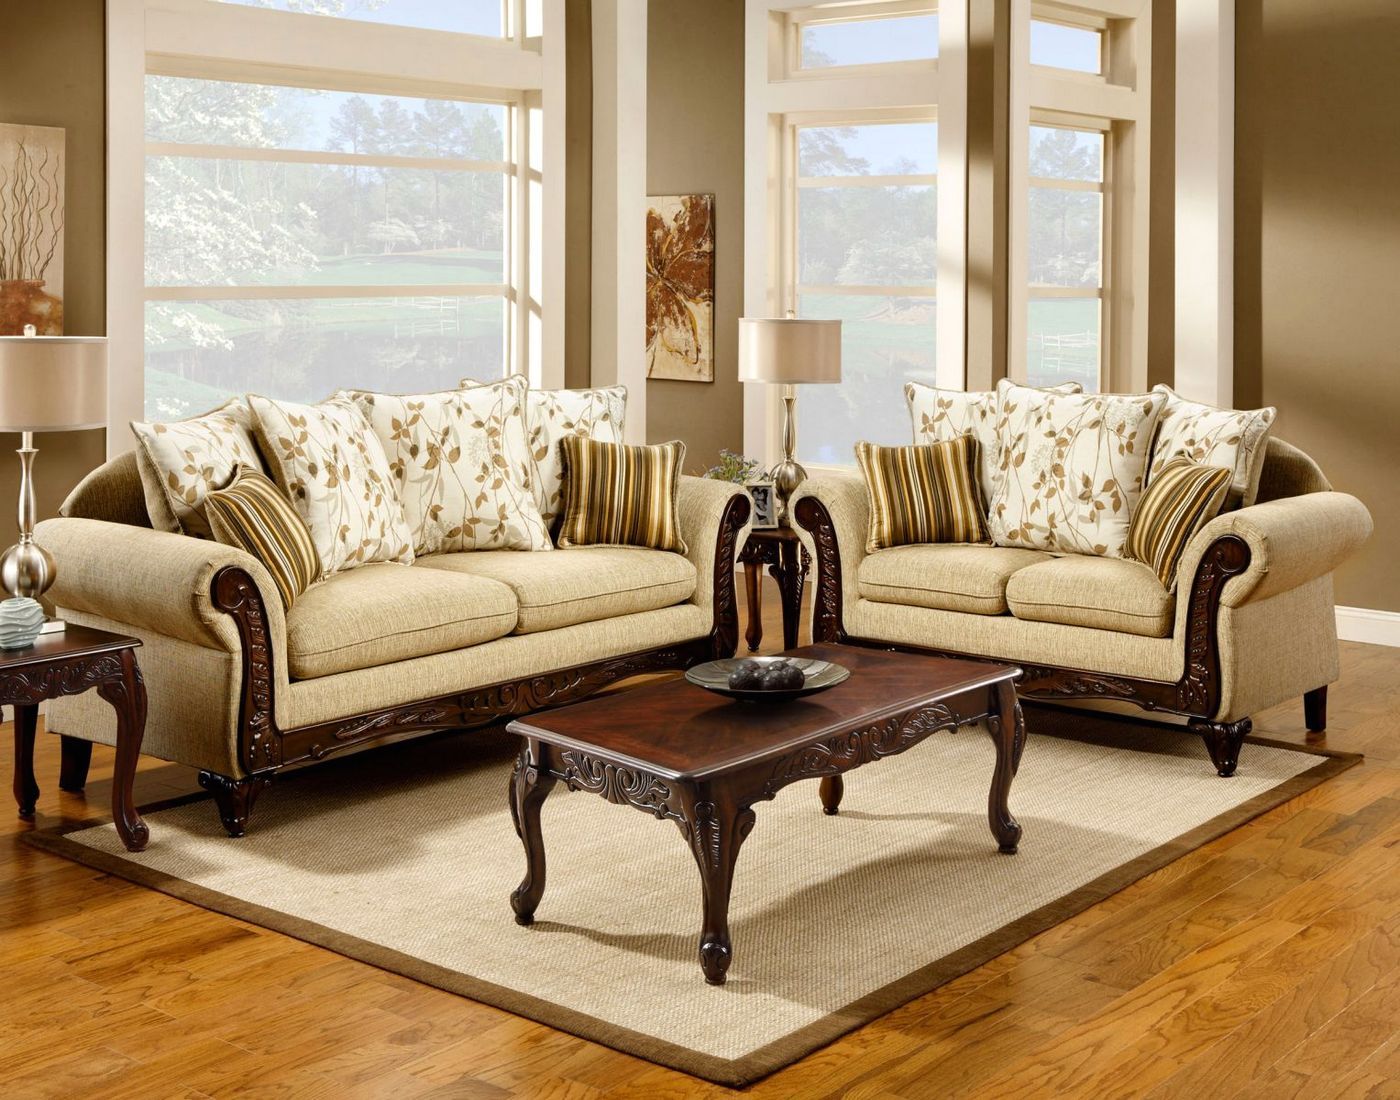 most durable sofa brands white leather doncaster traditional desert sand living room set with